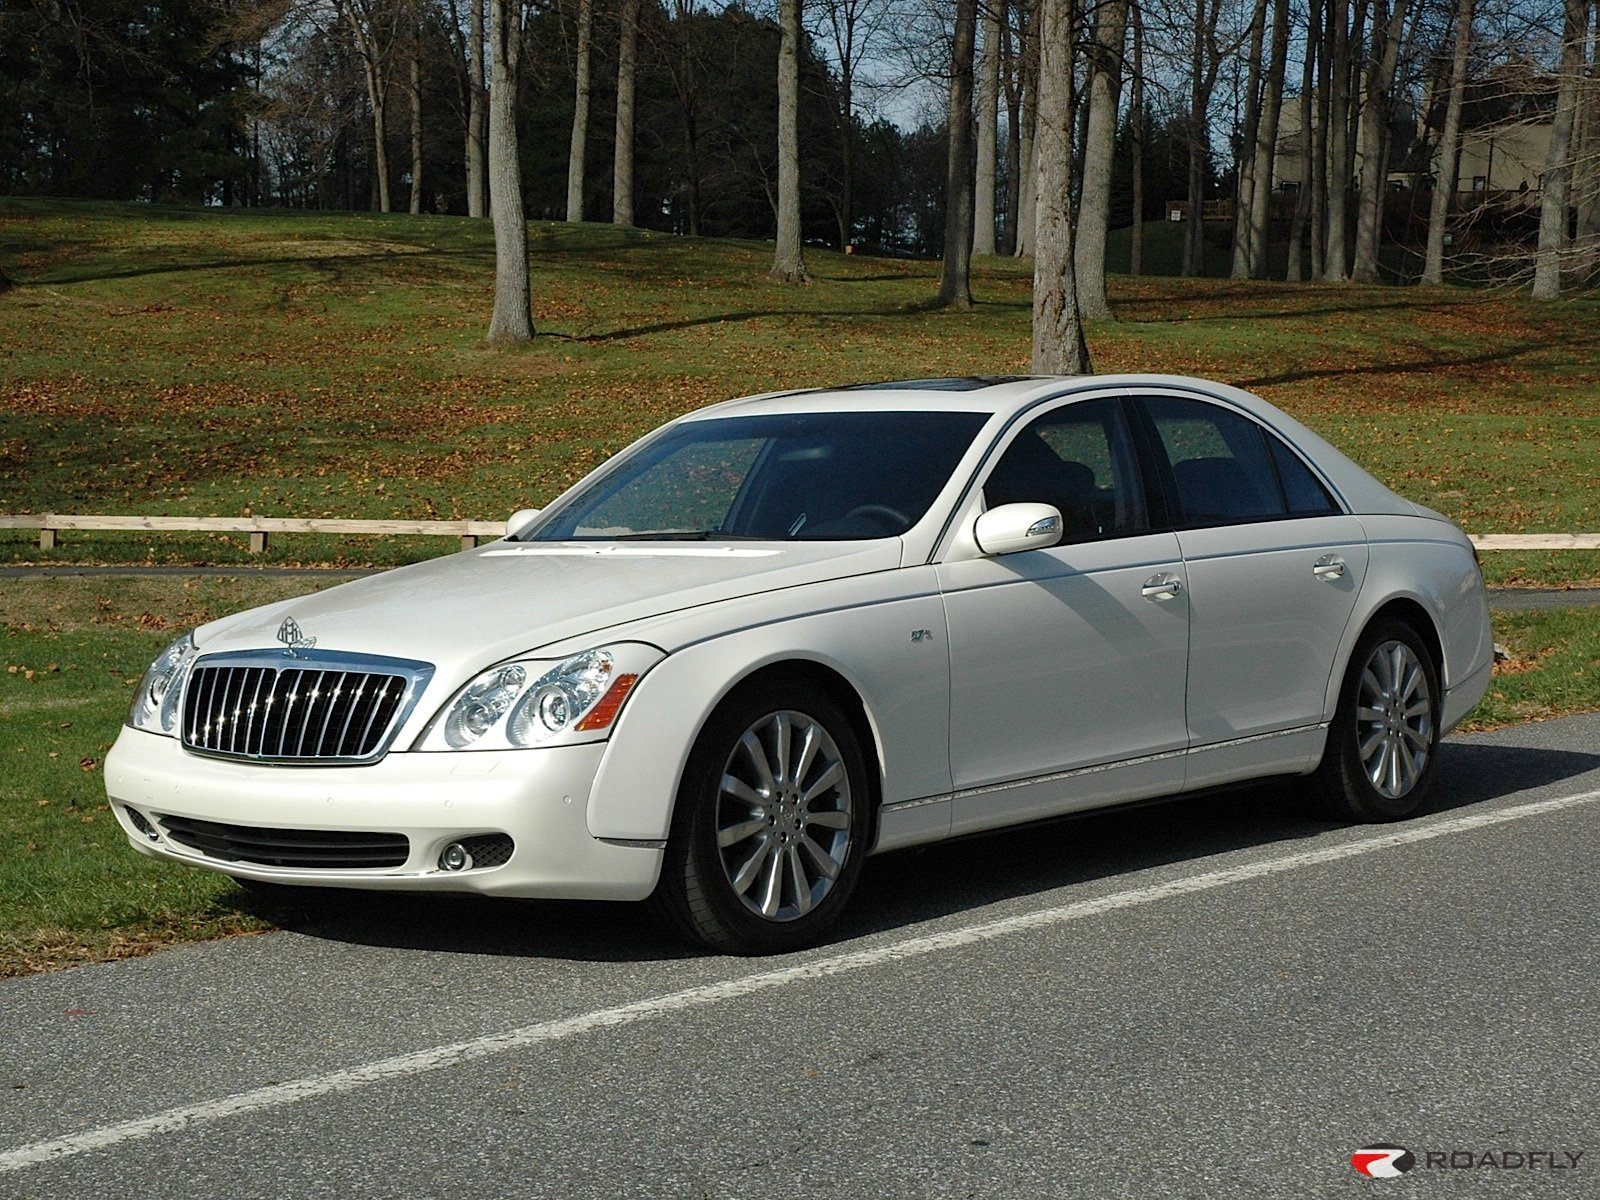 Latest Fast Cars Maybach Car The 8 Million Dollar Phots Free Download